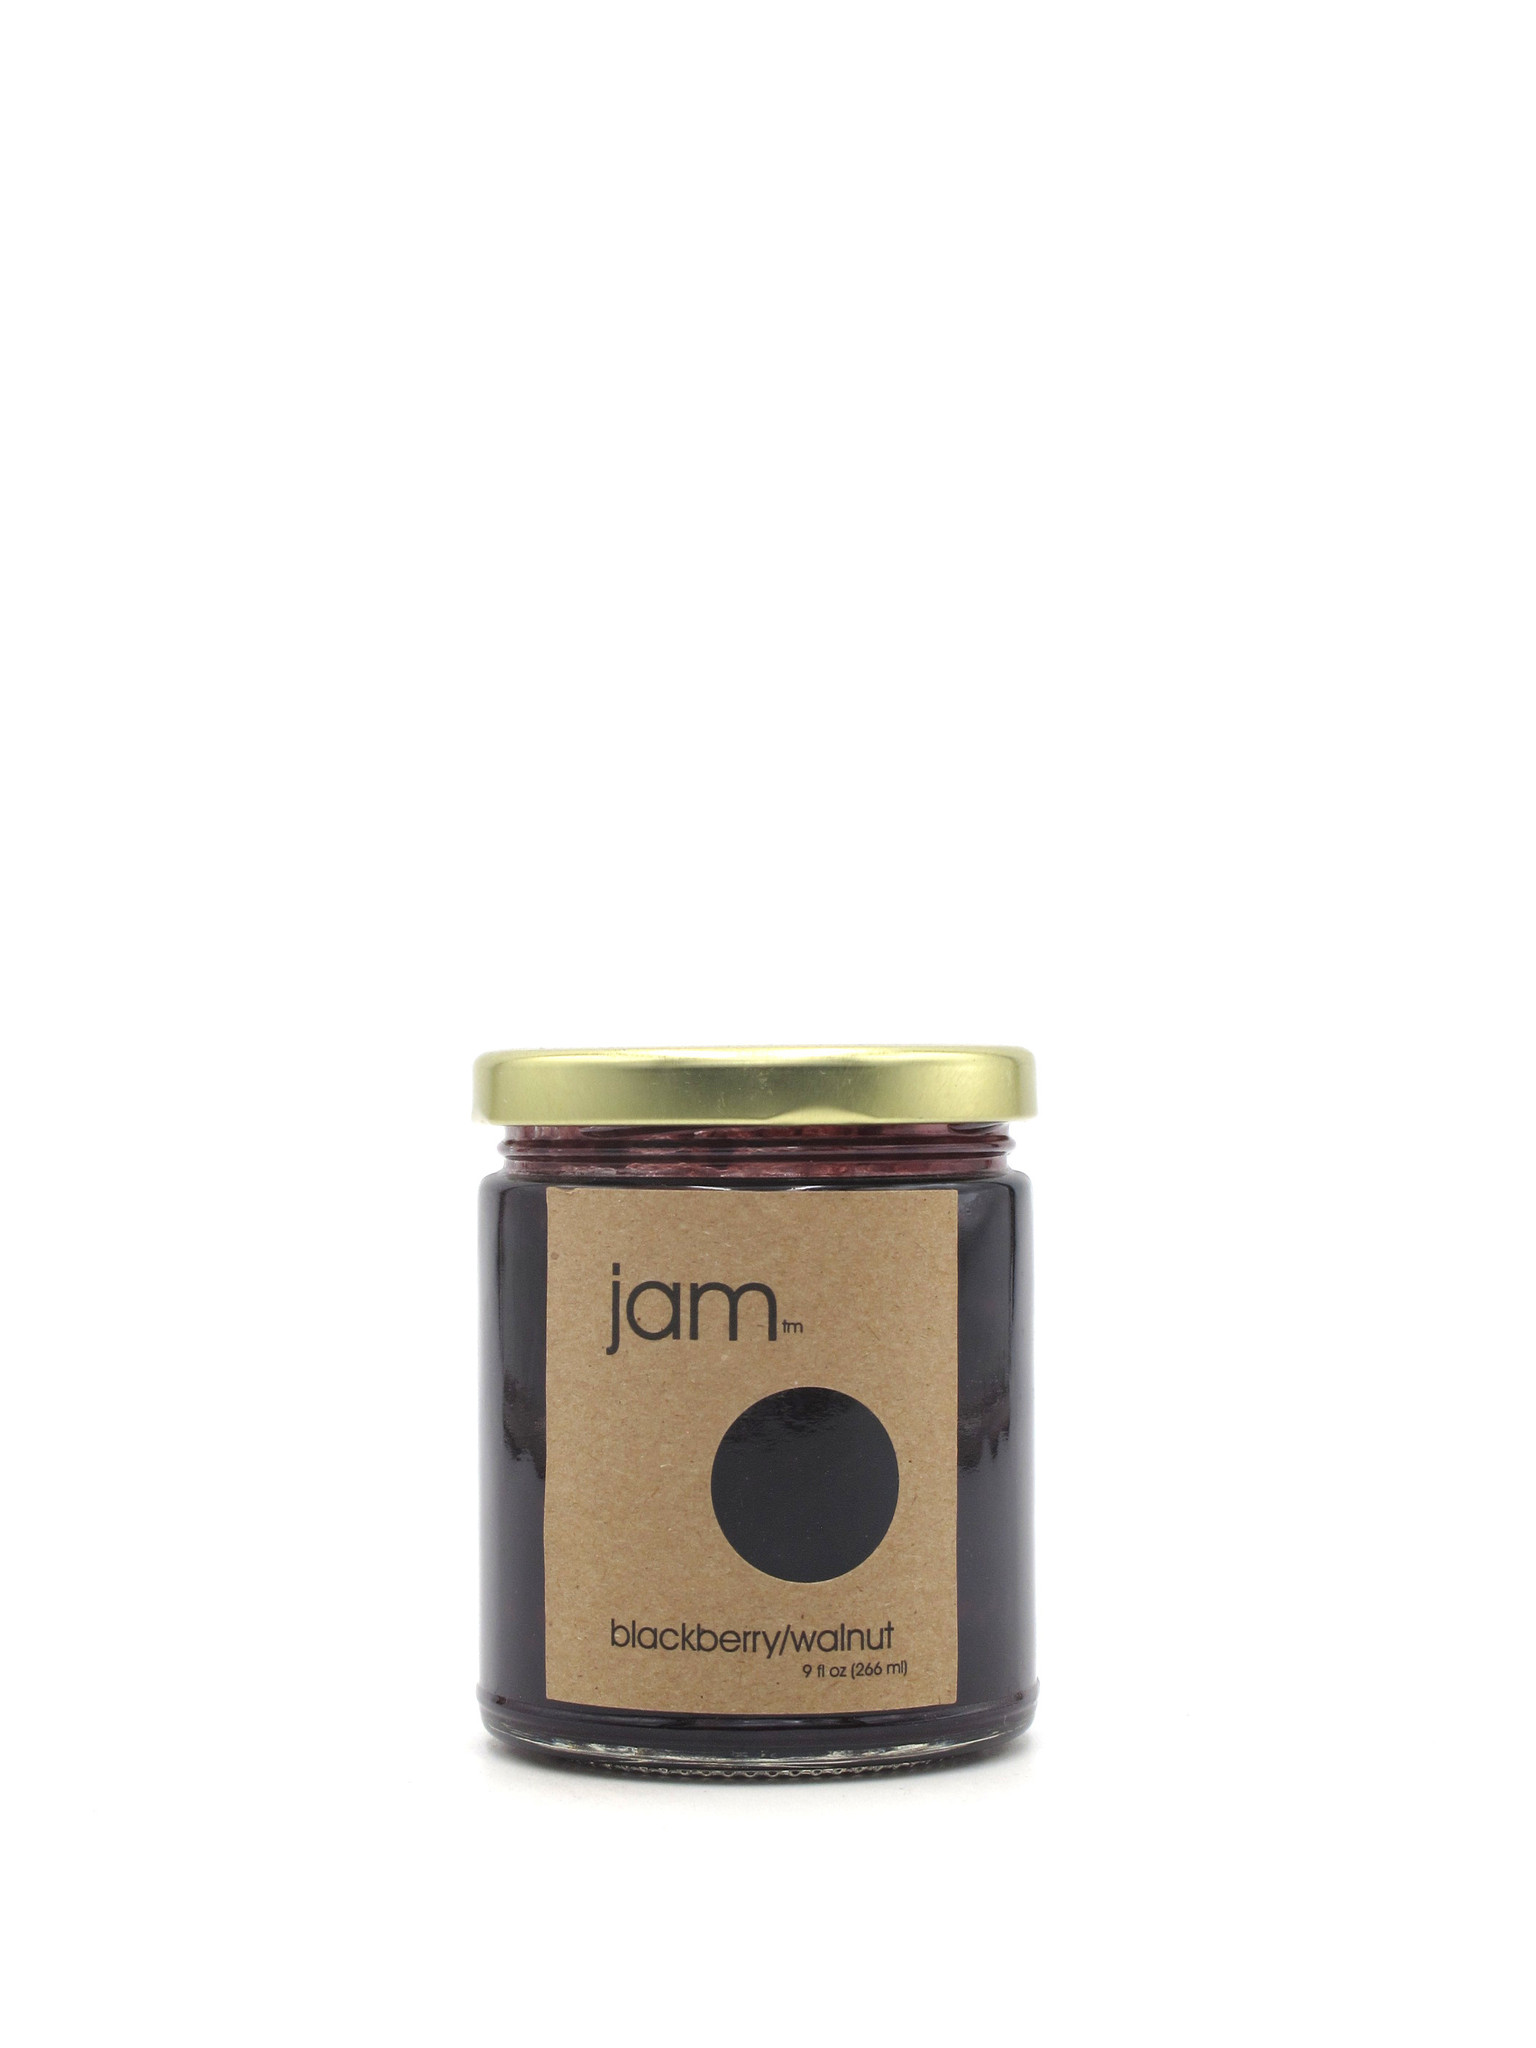 We Love Jam We Love Jam Blackberry Walnut 9oz